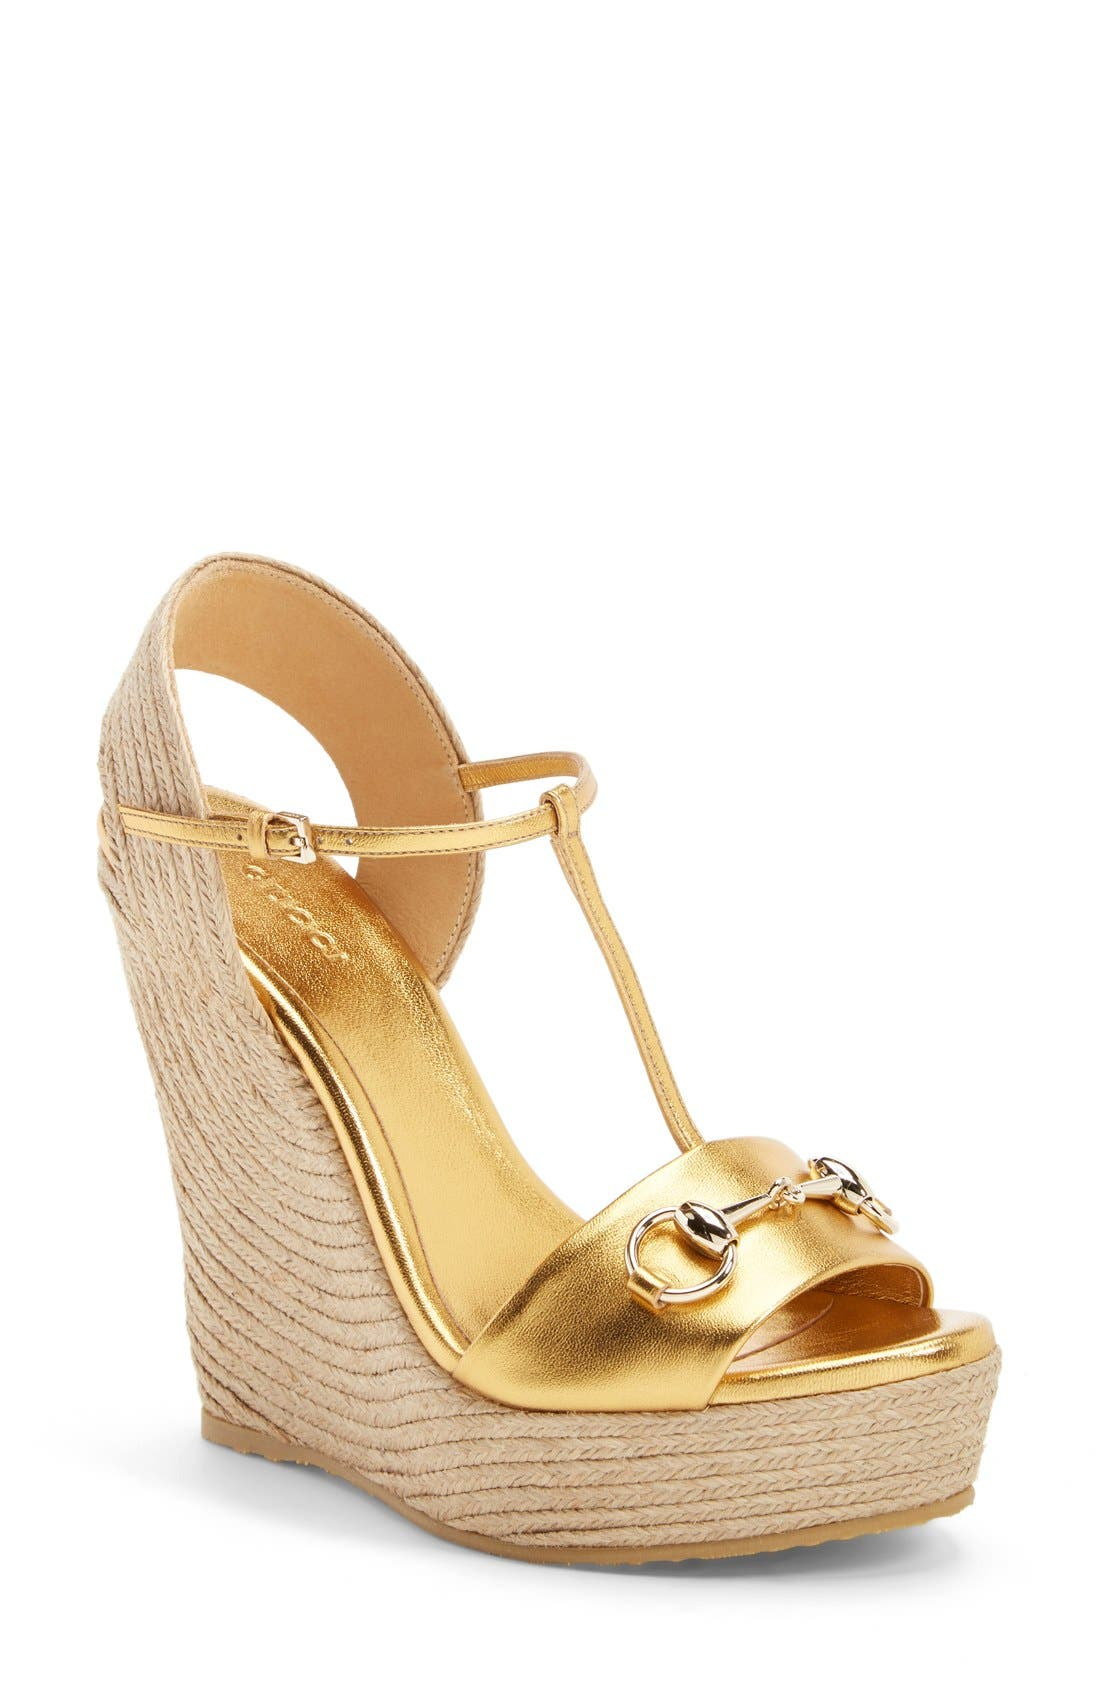 Main Image - Gucci 'Rafia' T-Strap Wedge Sandal (Women)